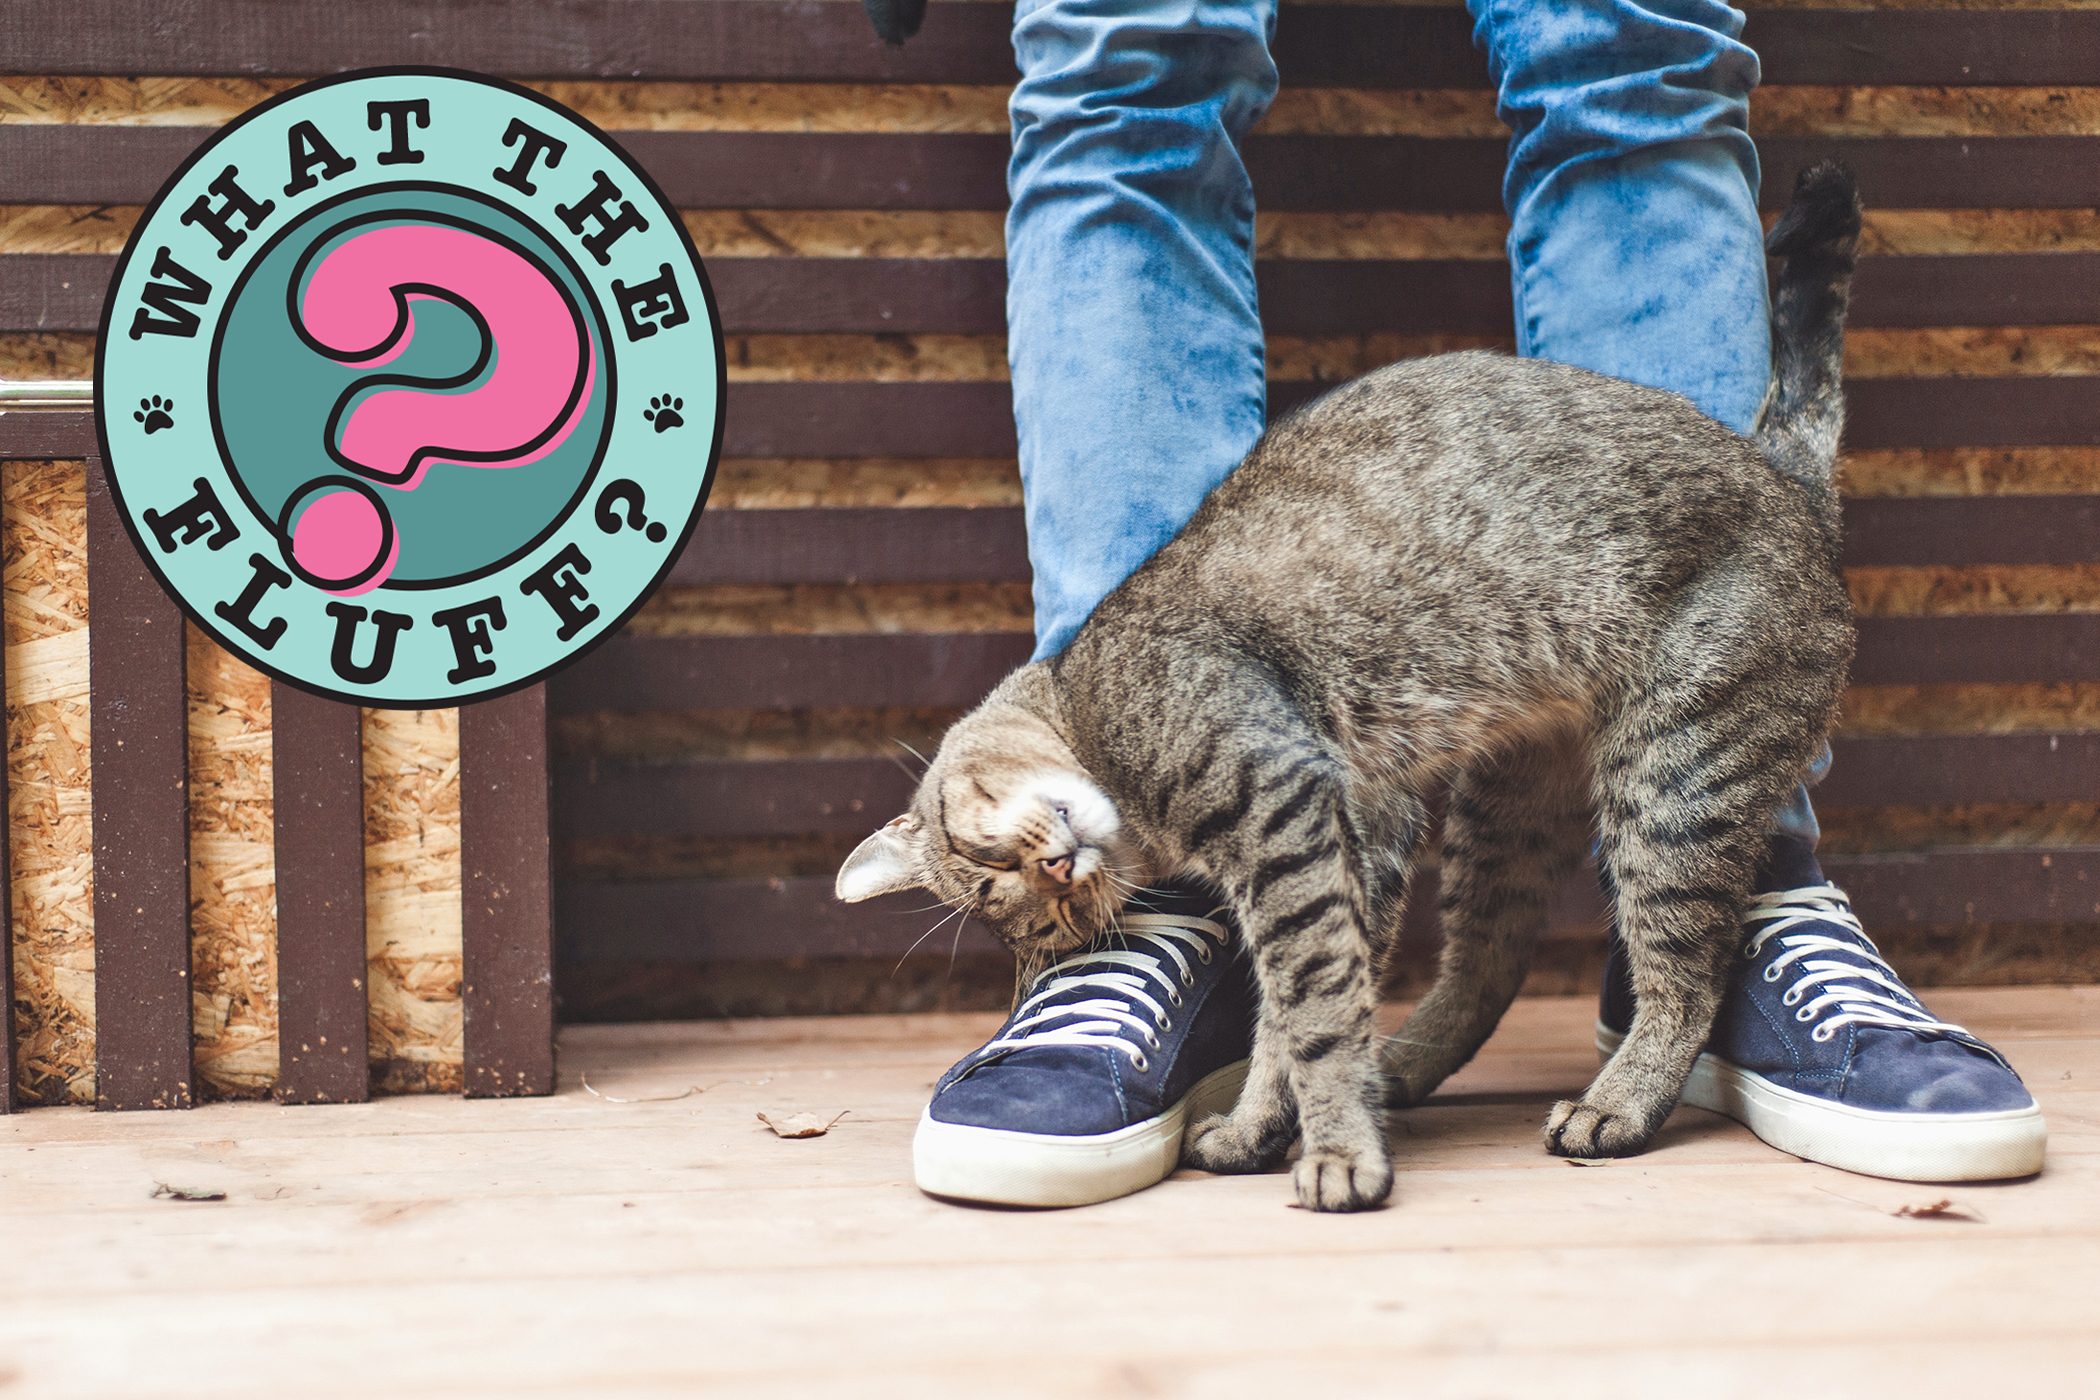 why do cats rub against you photo of a tabby cat rubbing against jeans and shoes with a what the fluff logo in the corner